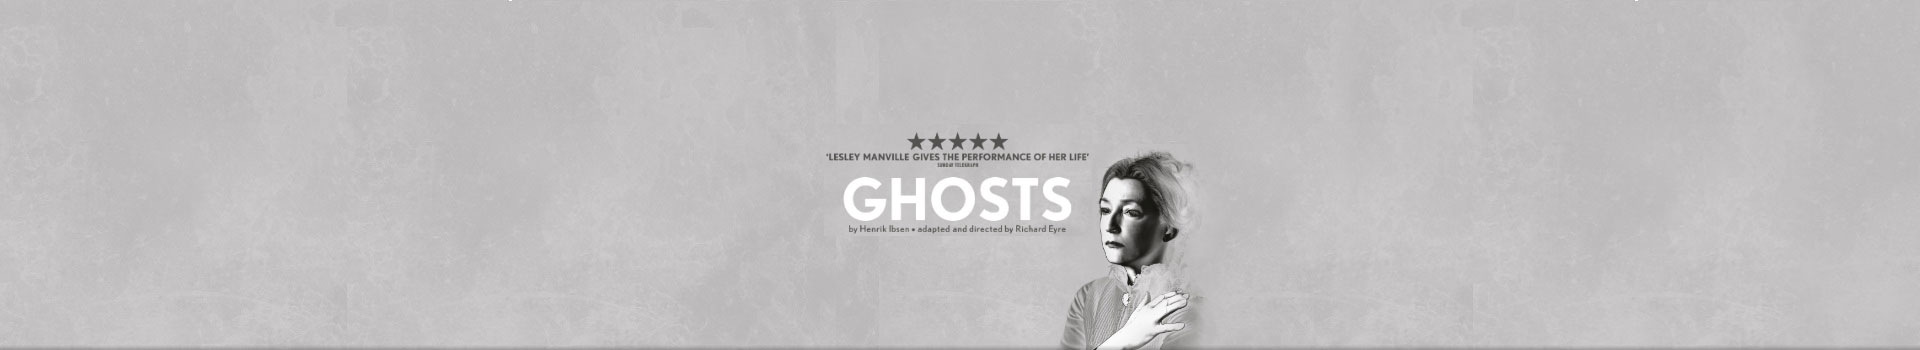 Ghosts banner image